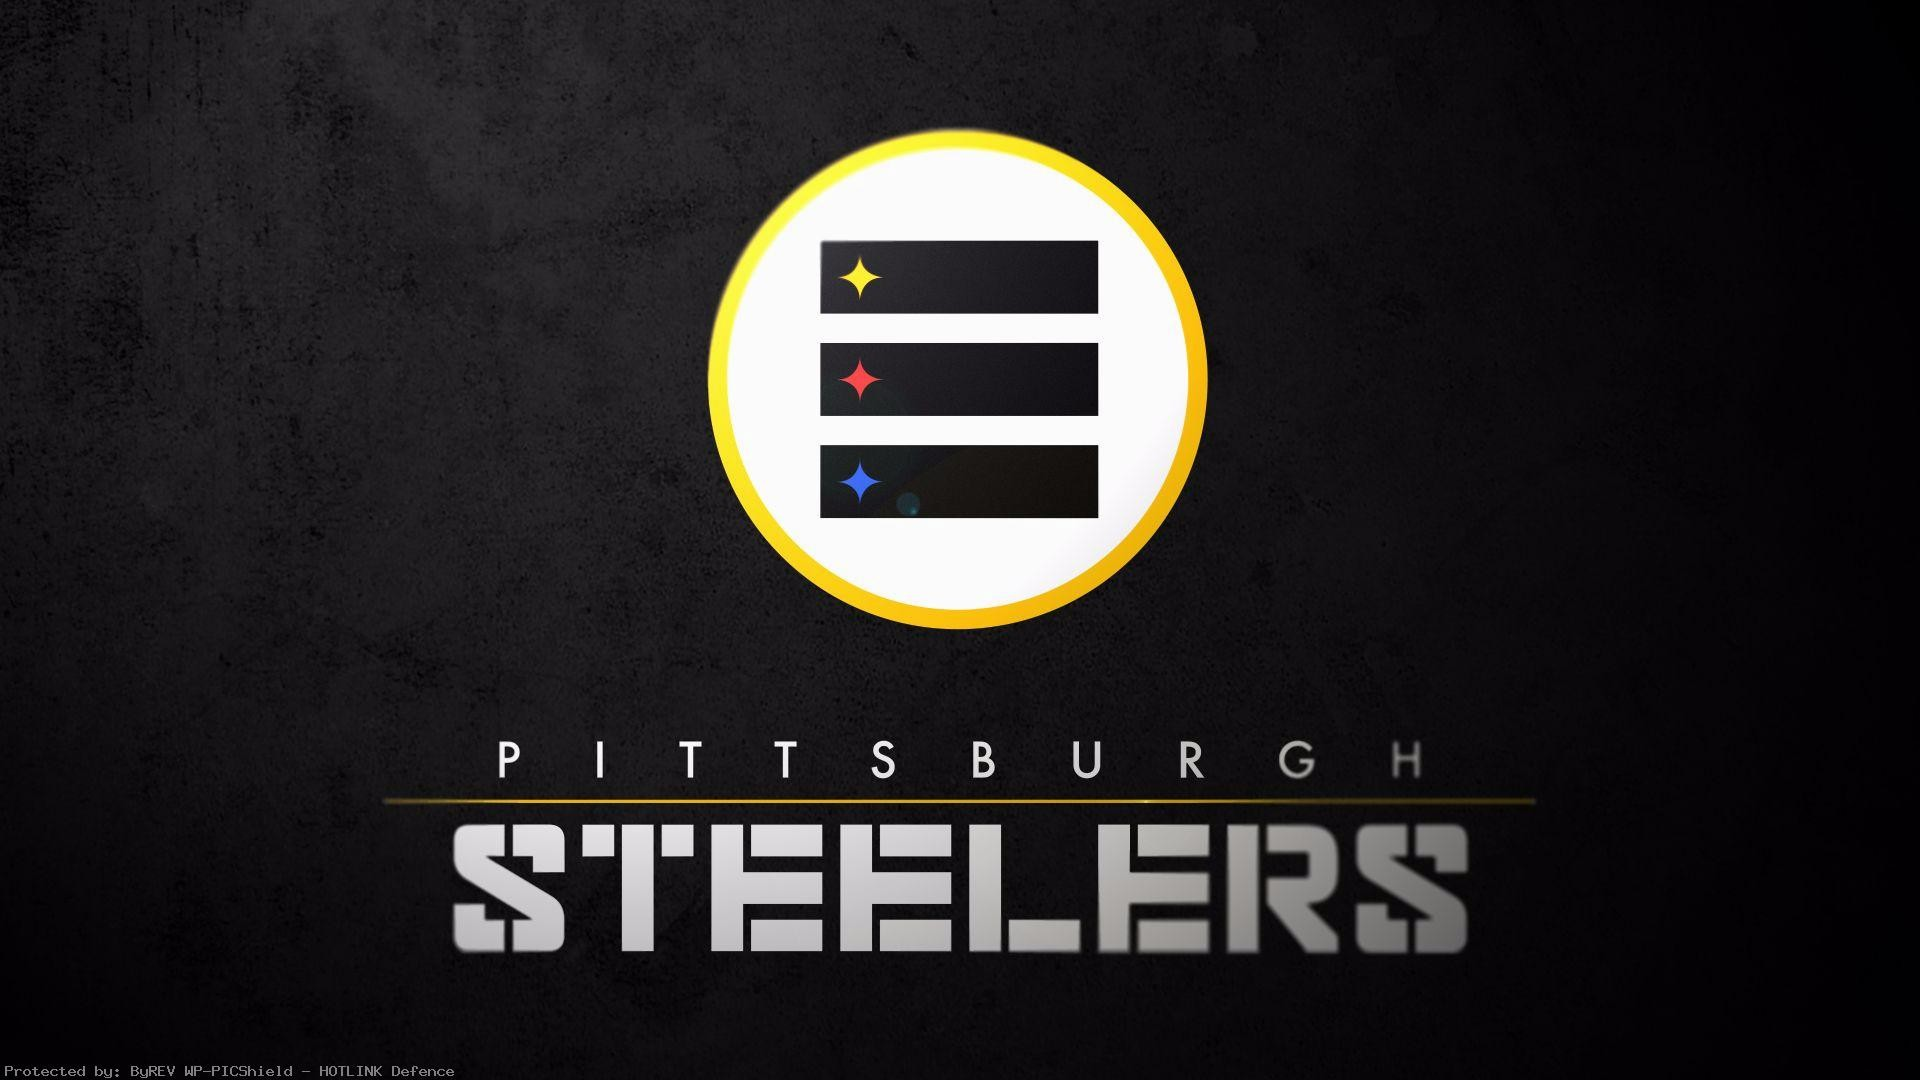 Steelers-Cell-Phone-1920%C3%97-Steelers-Adorable-